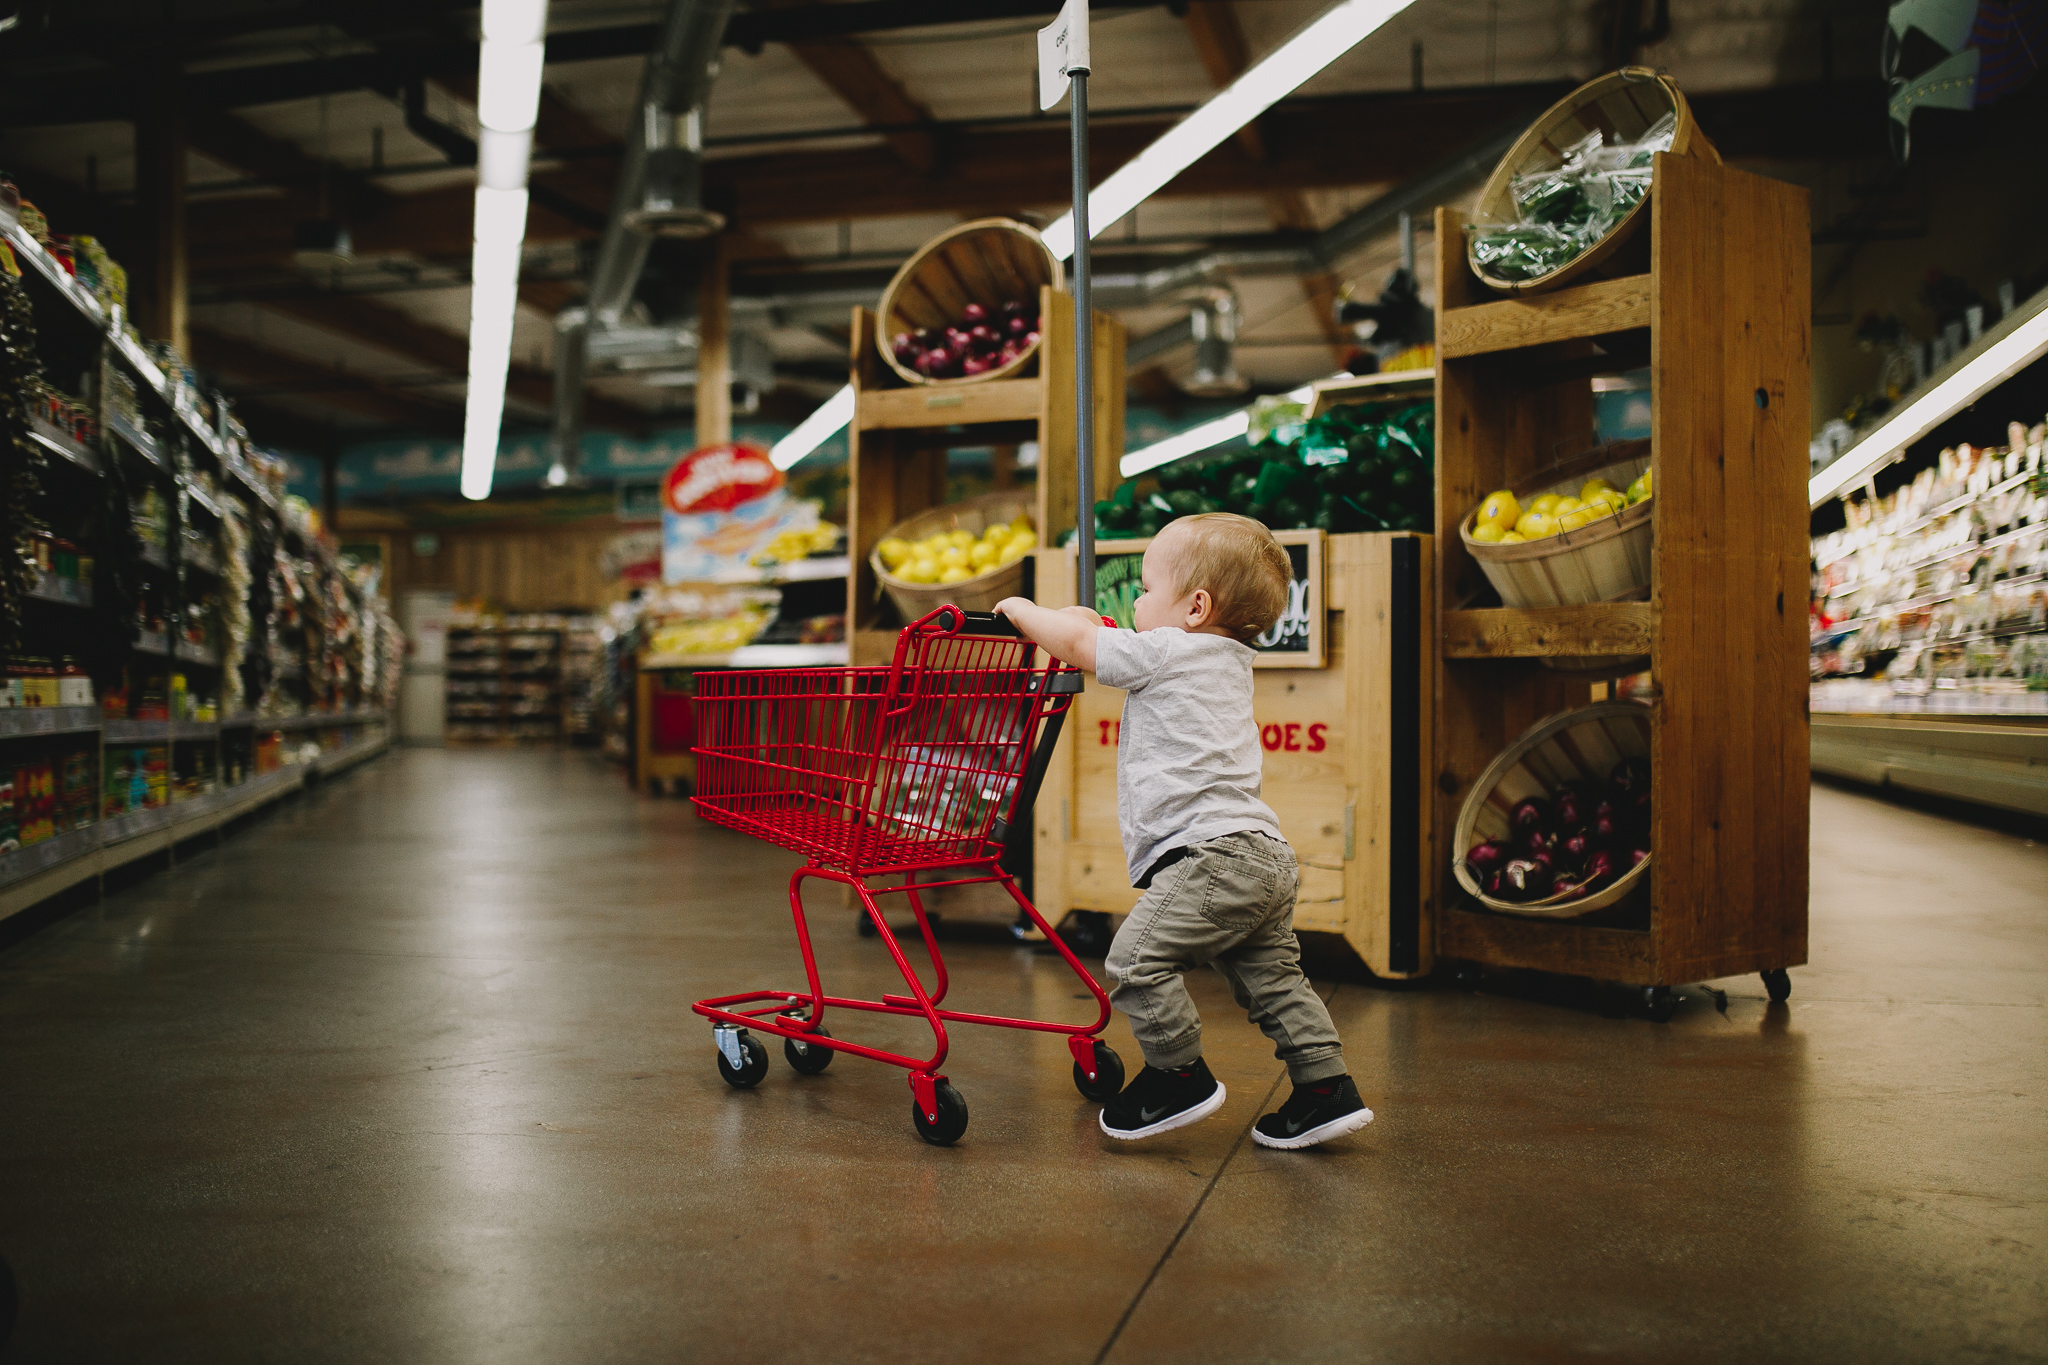 Archer_Inspired_Photography_Trader_Joes_Lifestyle_Photographer_Morgan_Hill_California-4.jpg